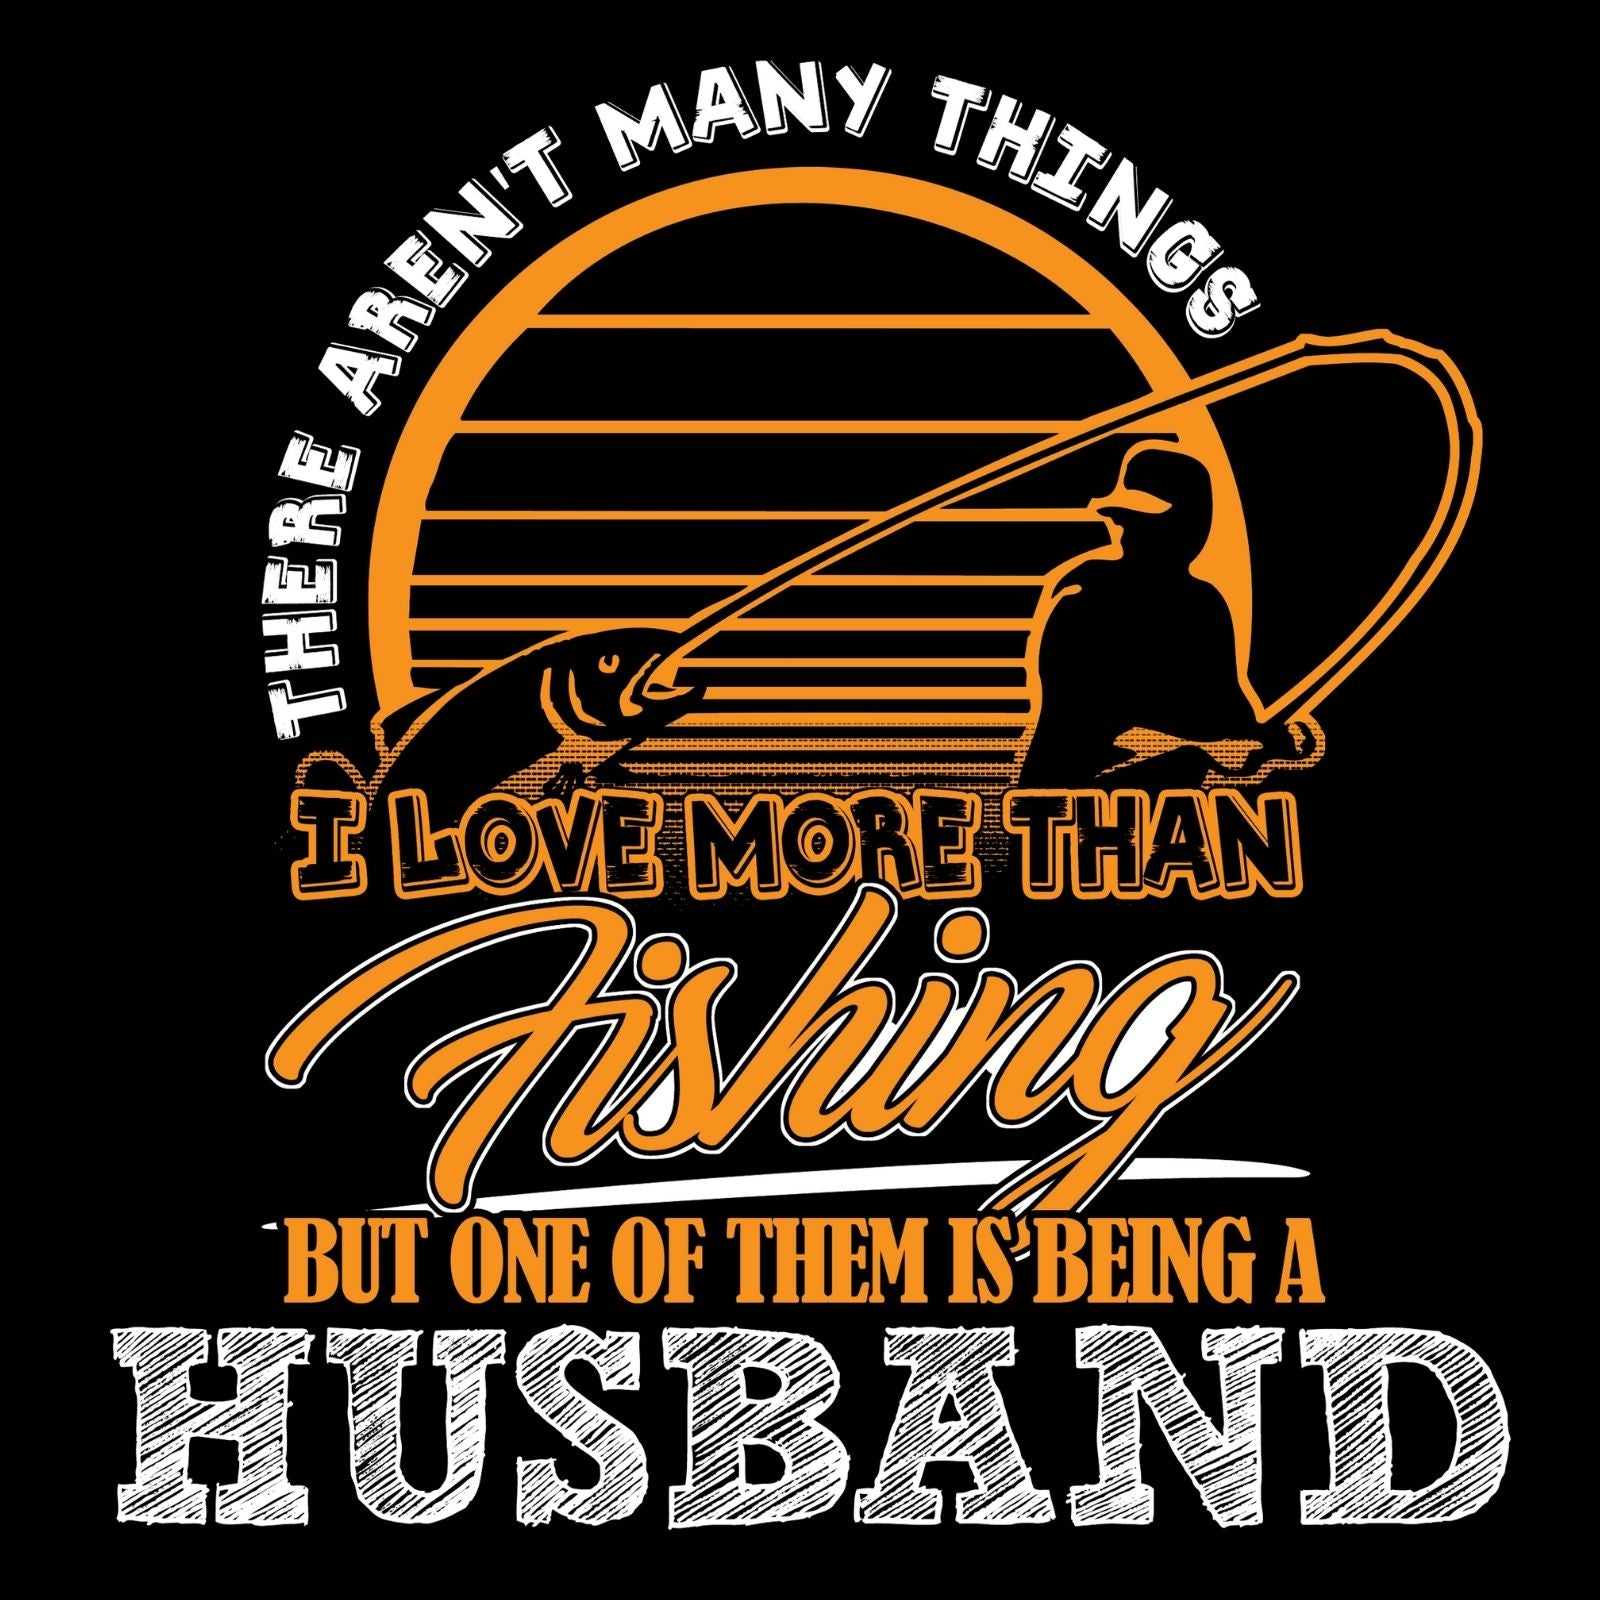 There Aren't Many Things I Love More Than Fishing But One Of Them Is Being A HUSBAND - Bastard Graphics